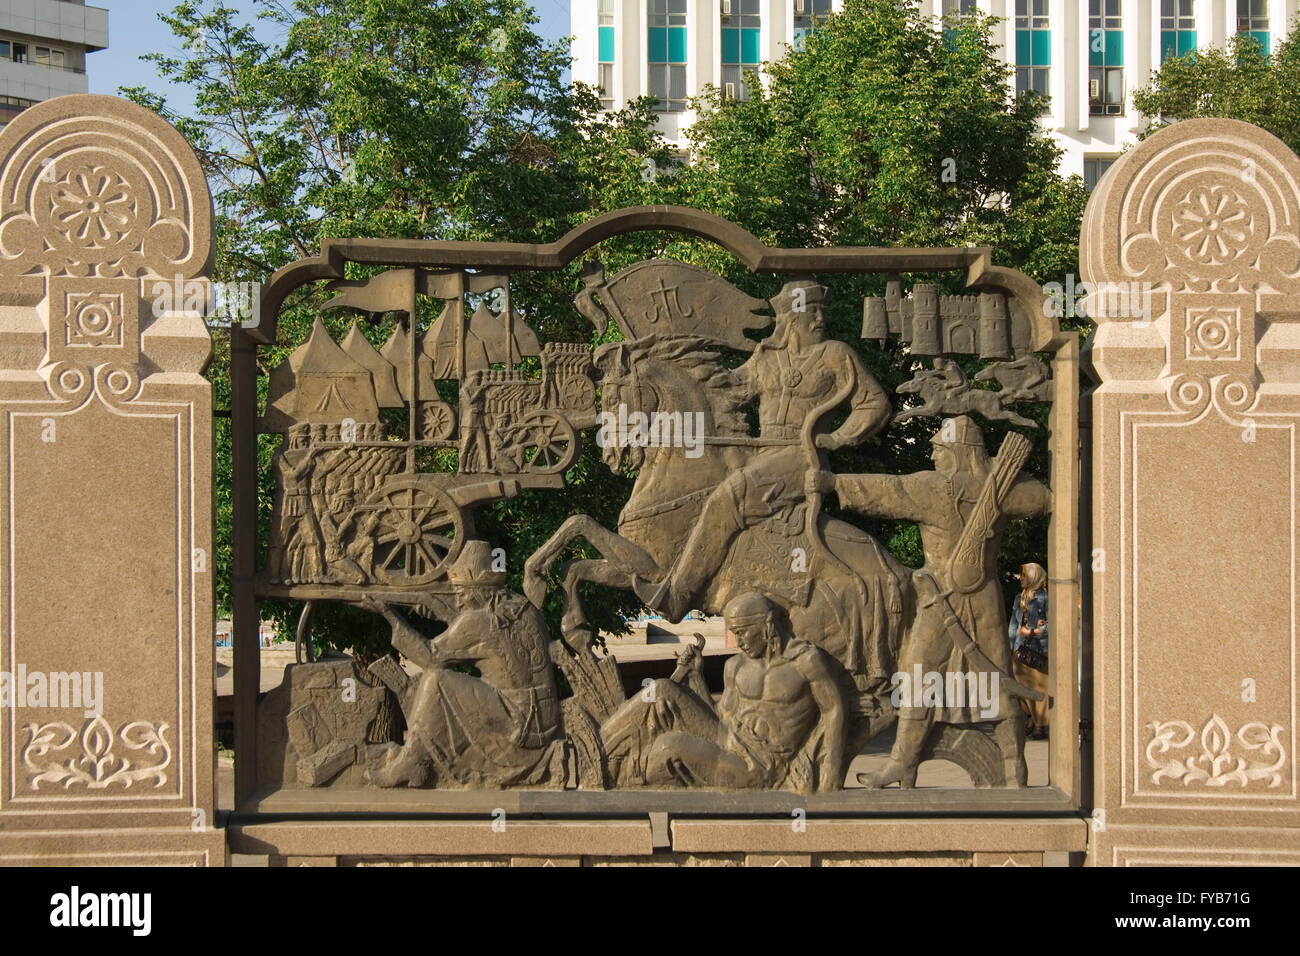 Independence square, Almaty, Kazakhstan - Stock Image